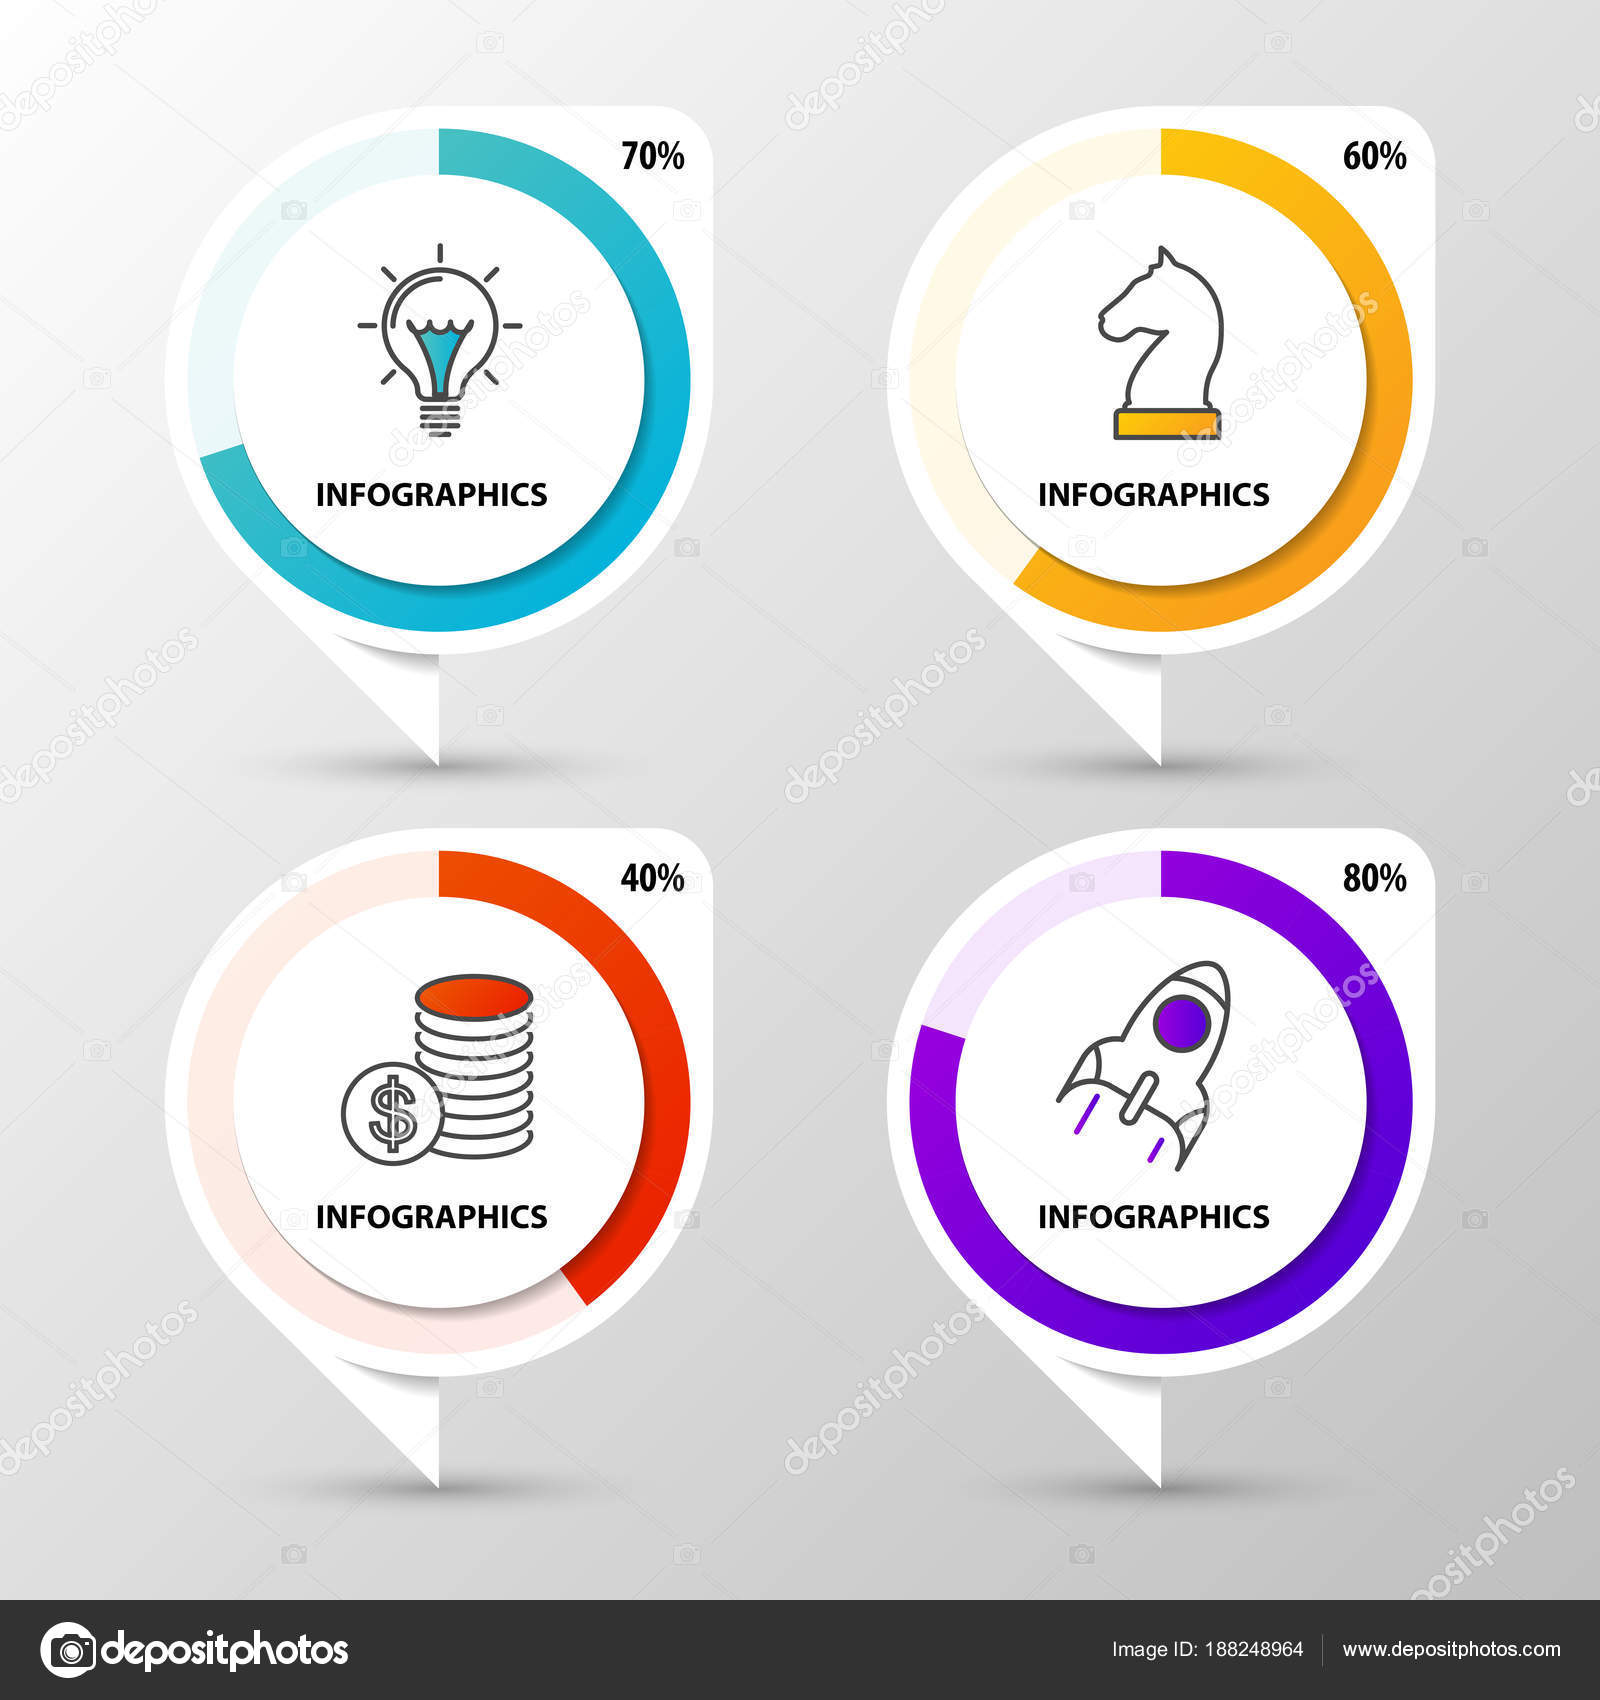 Infographic template business concept with percentage diagrams infographic template business concept with percentage diagrams stock vector cheaphphosting Choice Image